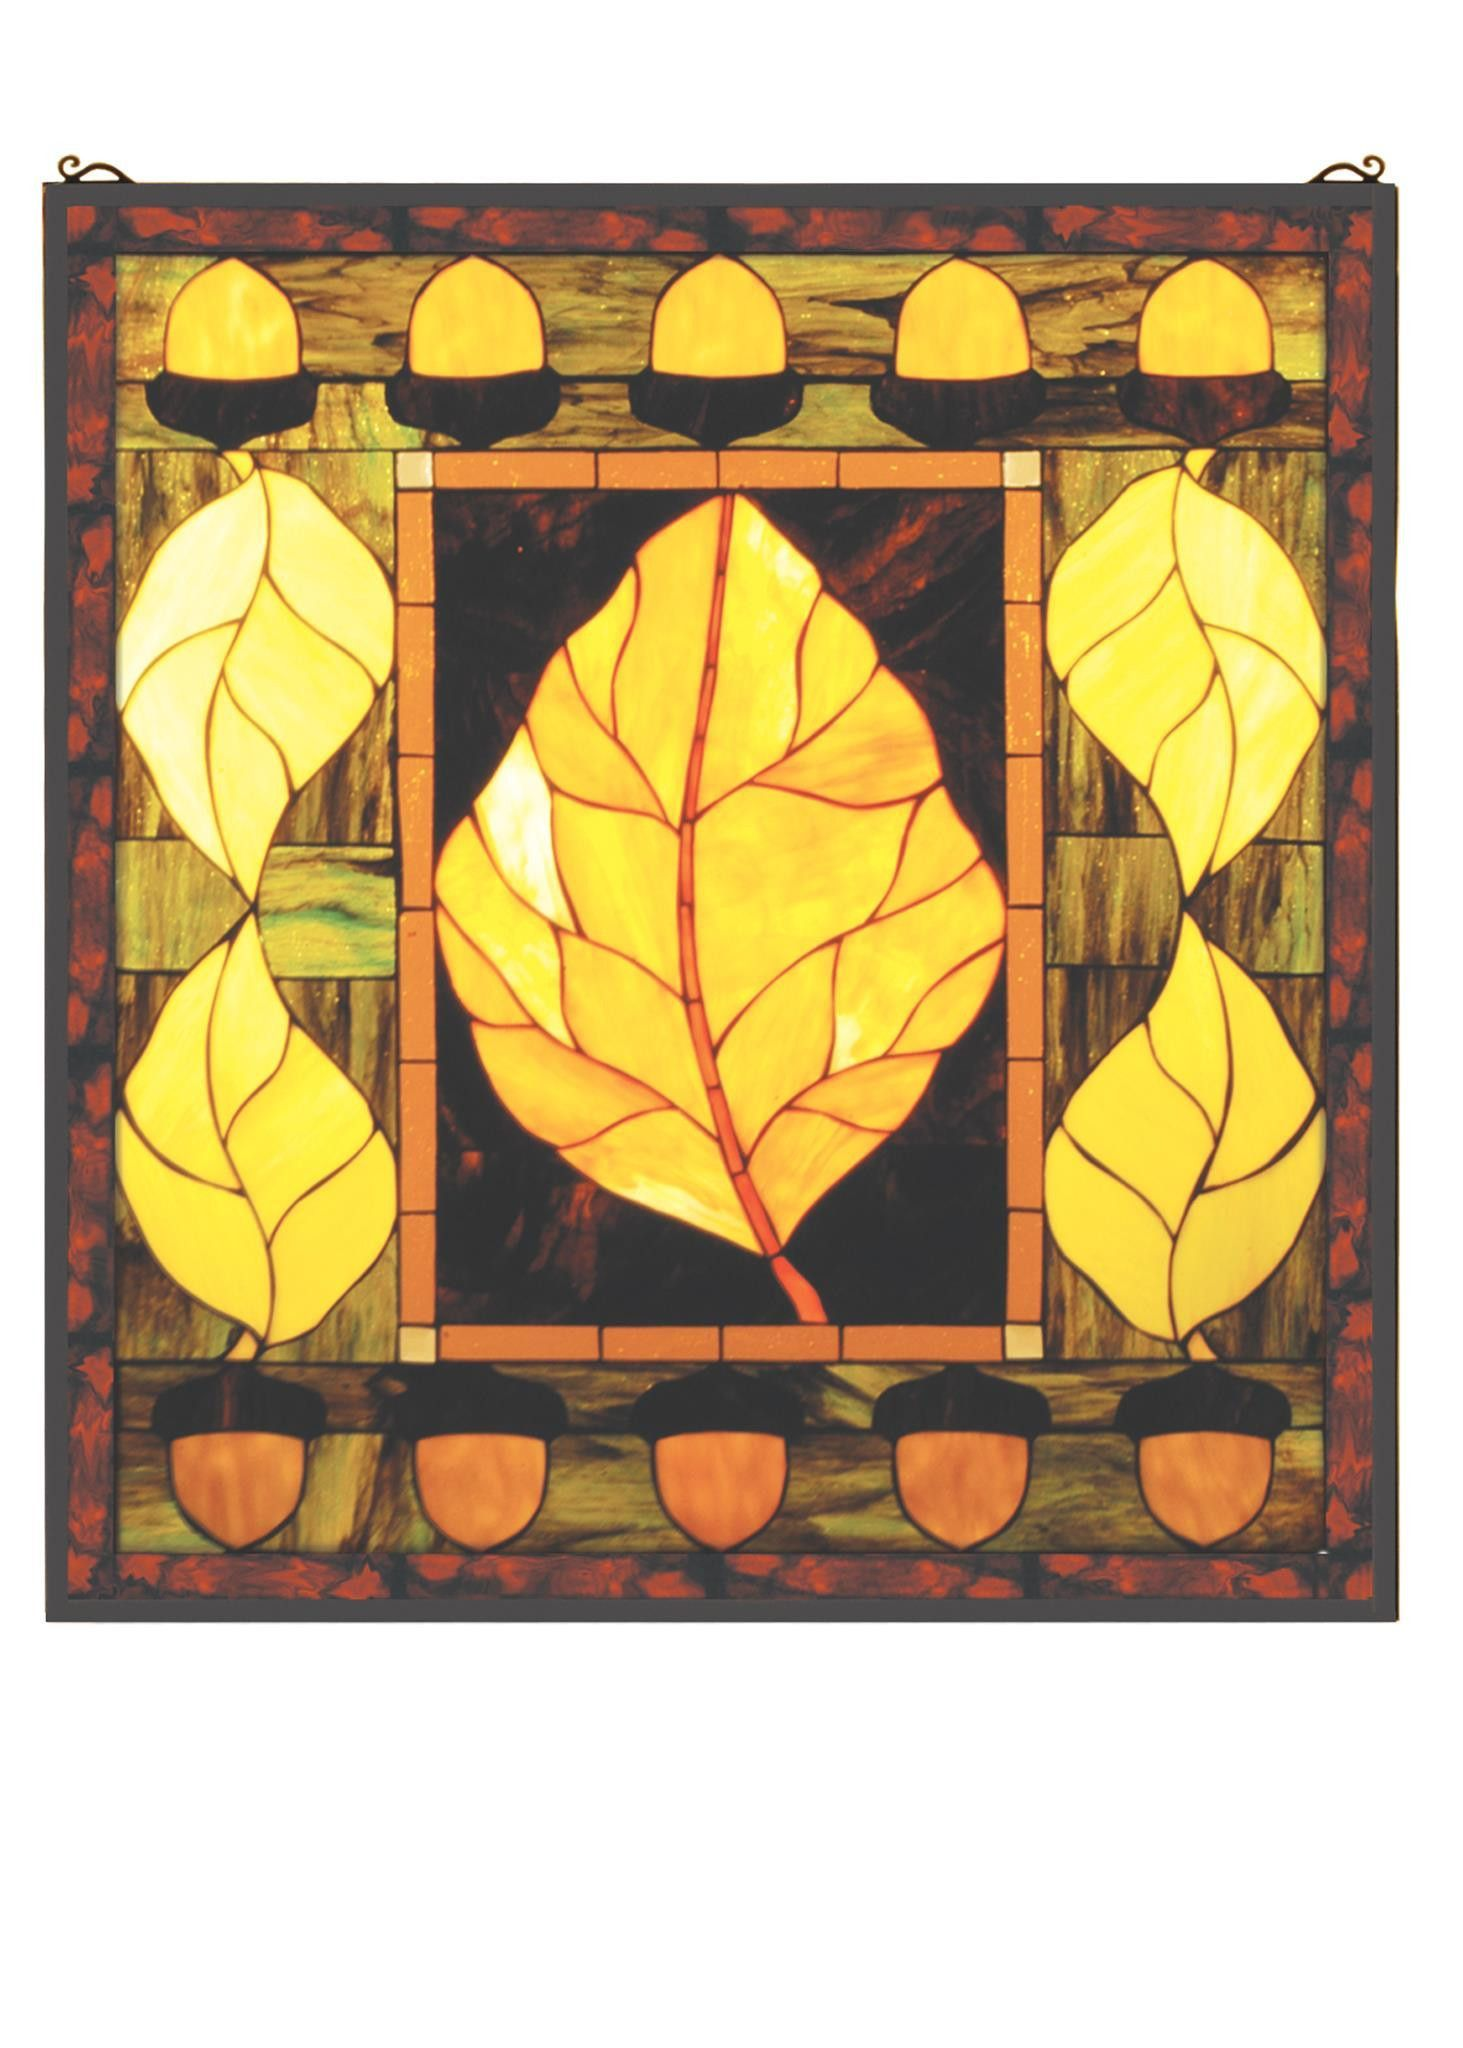 27 Inch W X 29 Inch H Harvest Festival Stained Glass Window